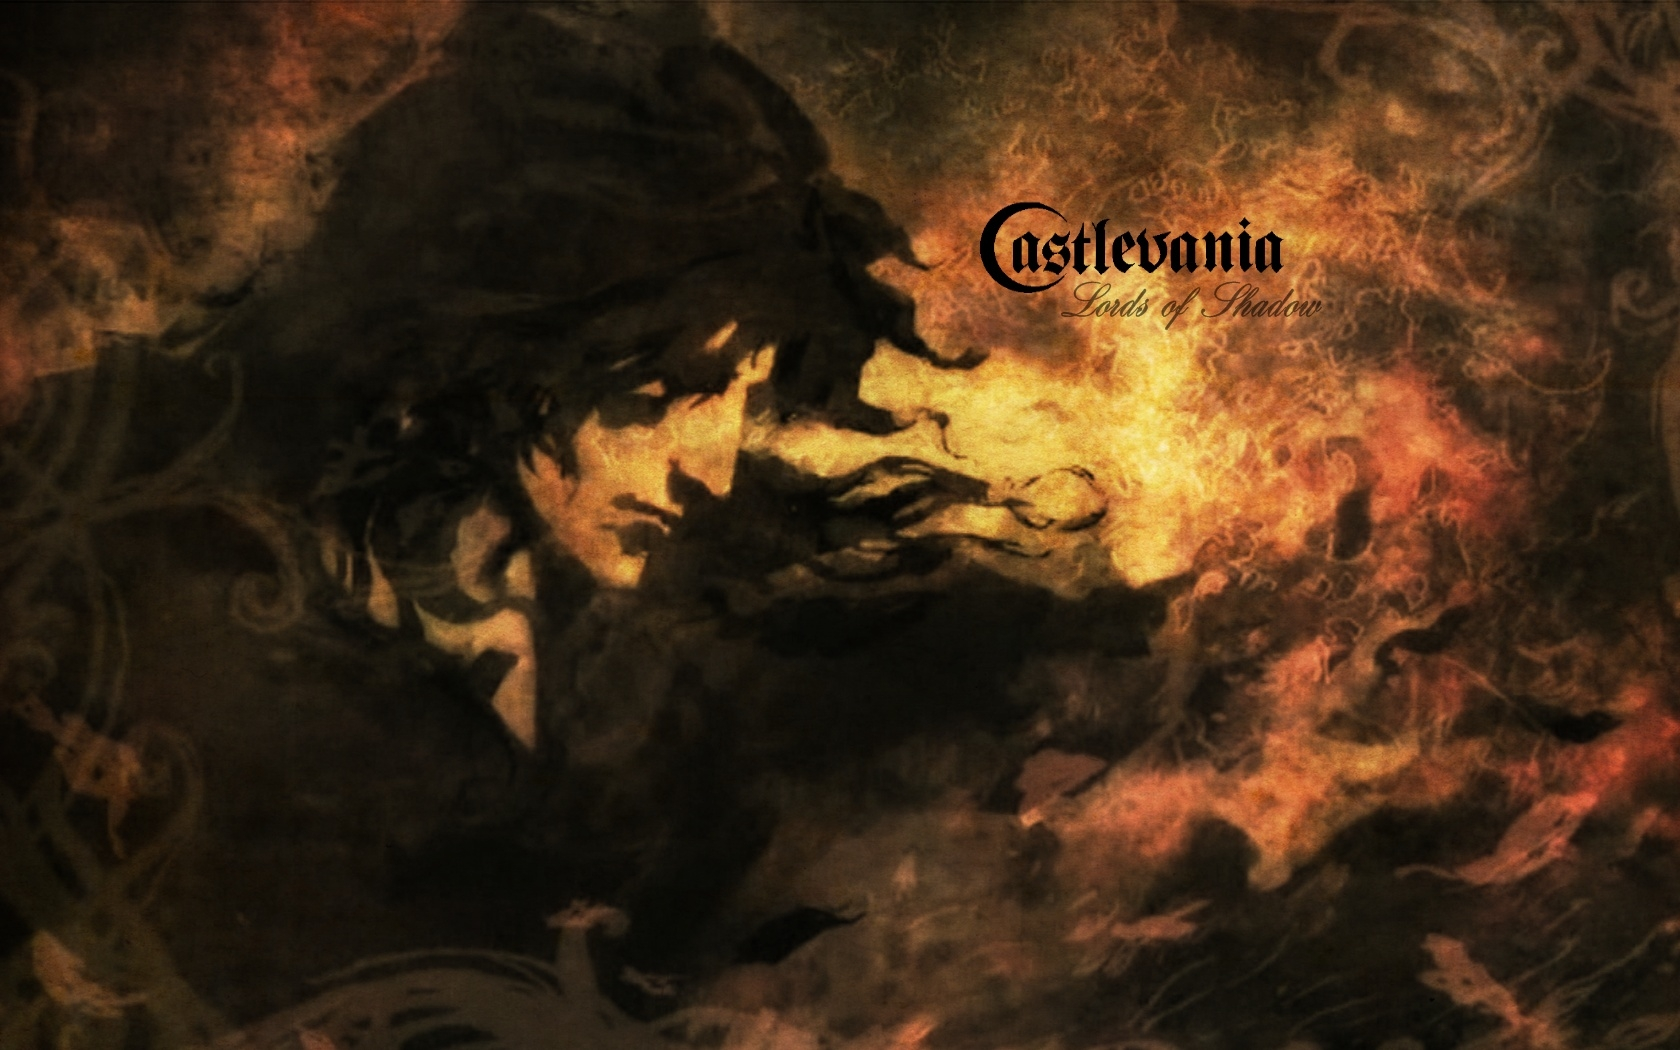 img 4cd1edddab48e Review: Castlevania: Lords of Shadow